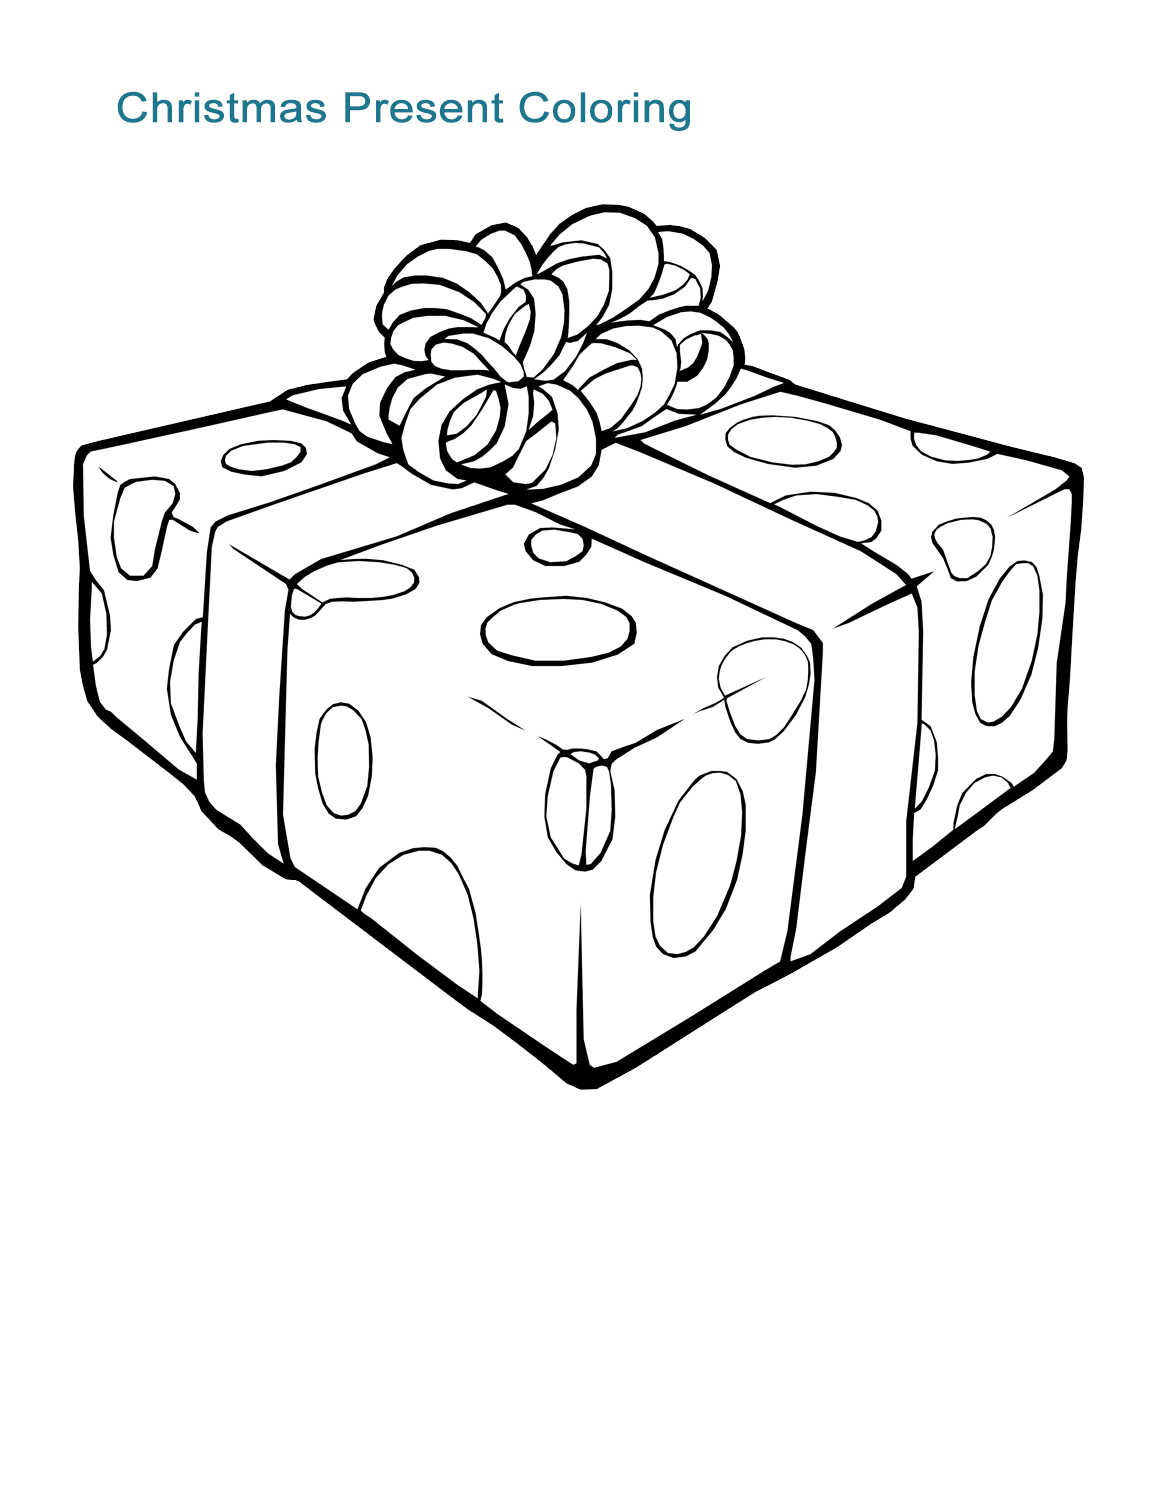 christmas present coloring page craftsactvities and worksheets for preschooltoddler and christmas page present coloring